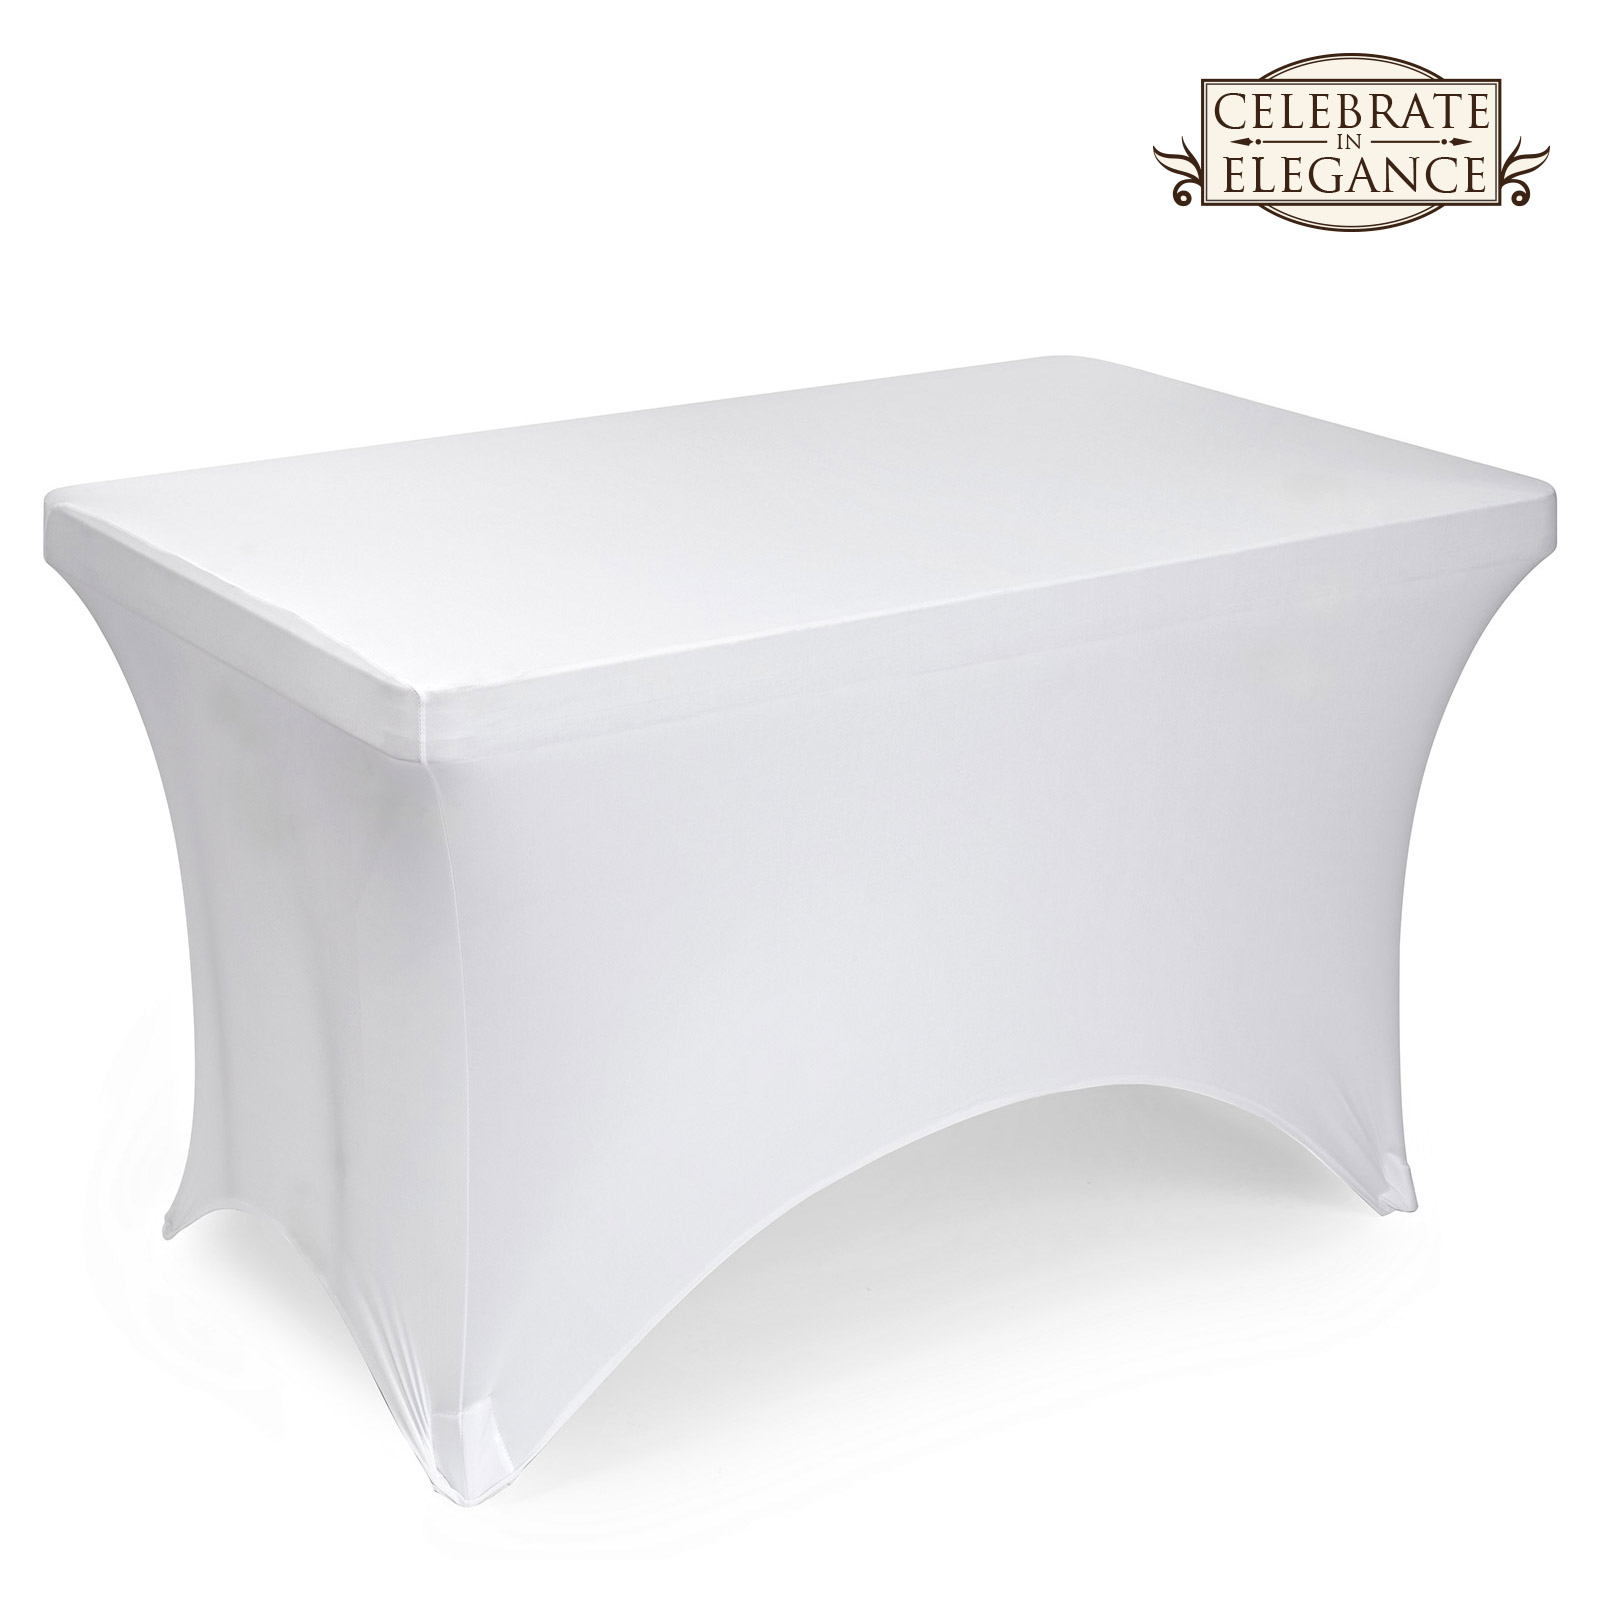 Fitted Spandex Stretch Fabric Tablecloth Cover Many